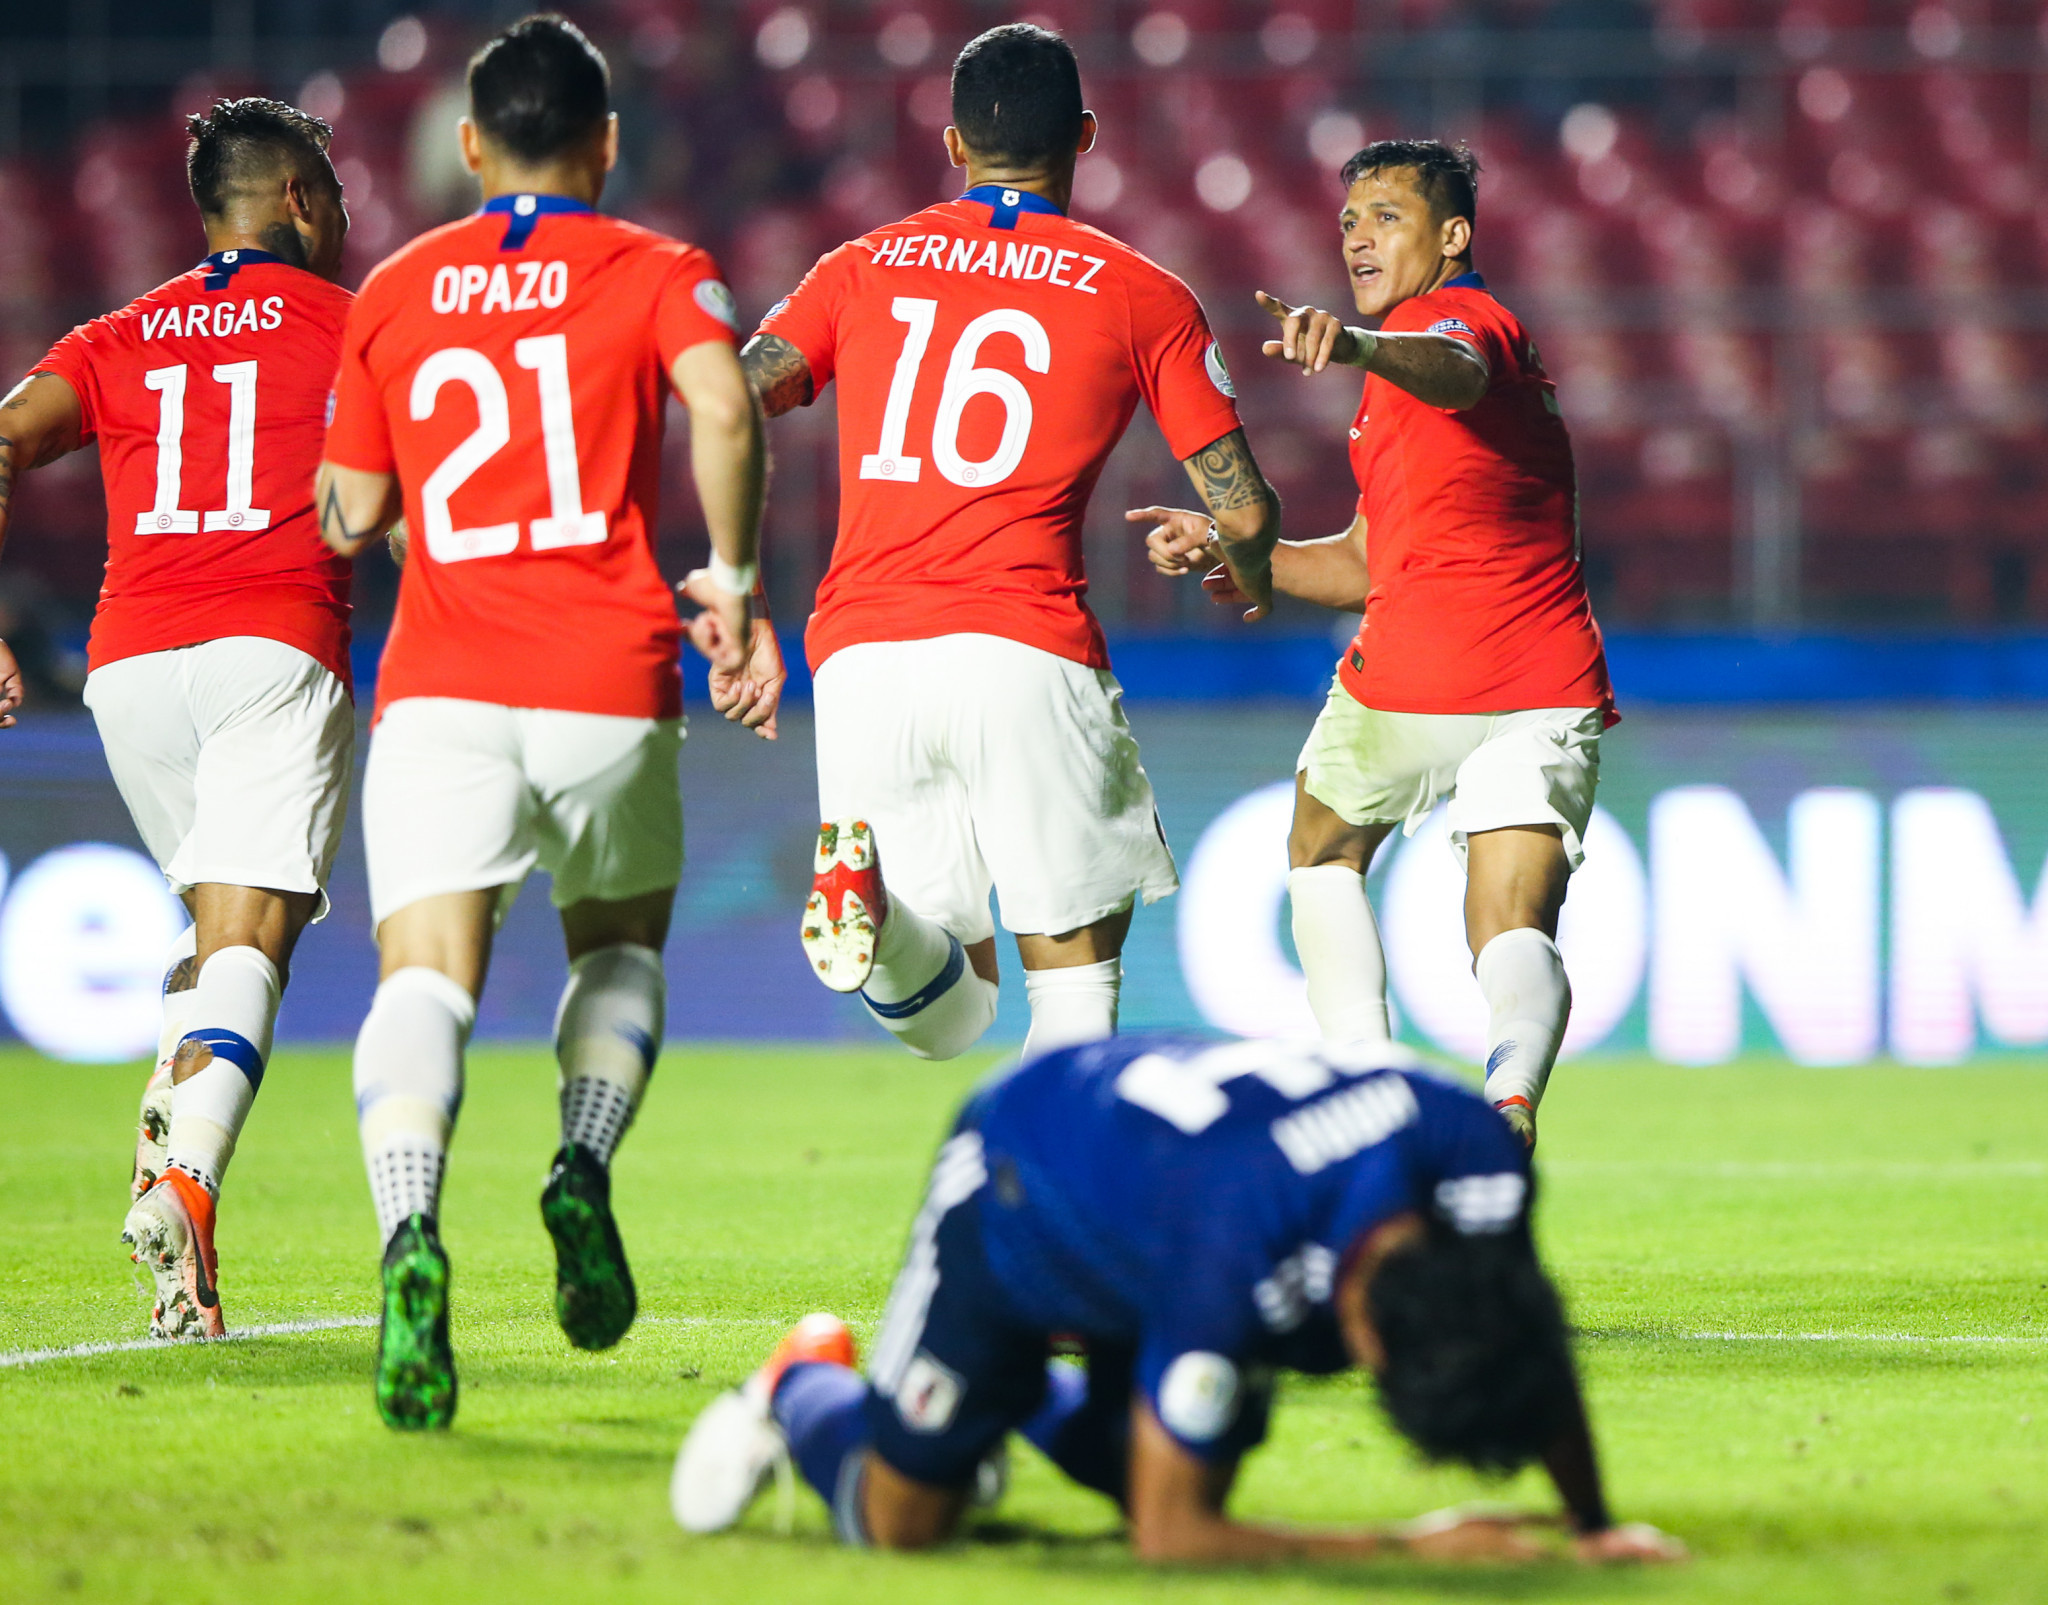 Reigning champions Chile begin Copa América defence with thumping win against inexperienced Japan